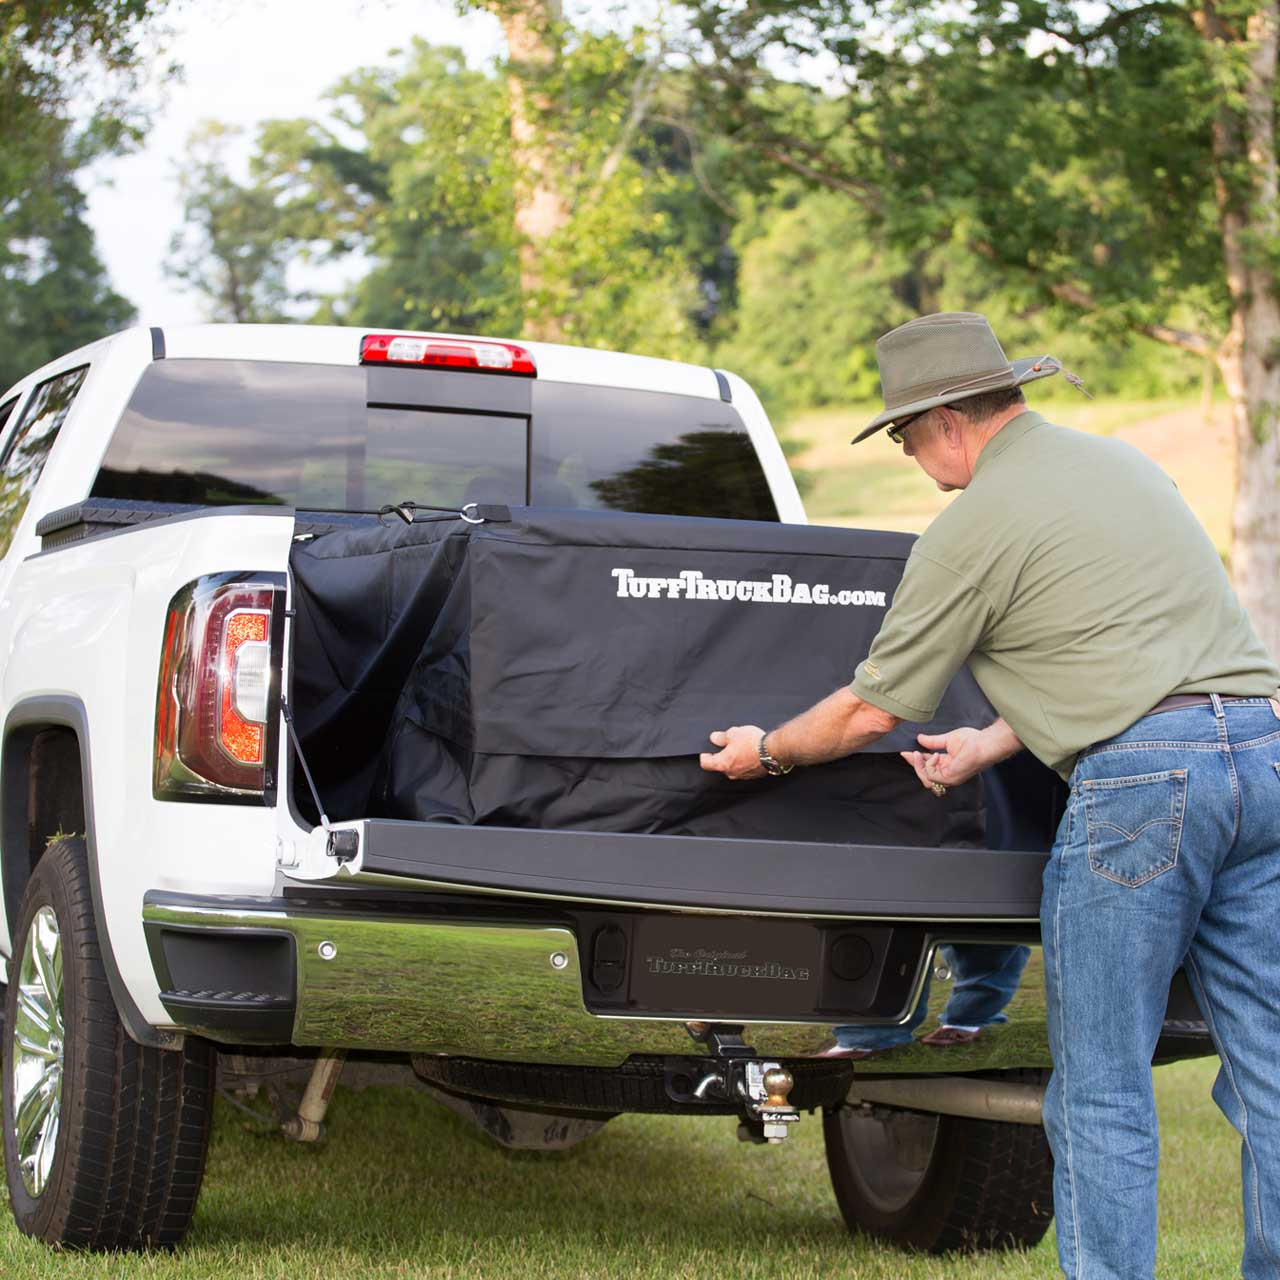 Black waterproof Tuff Truck Bag full of cargo in the back of a pickup truck bed